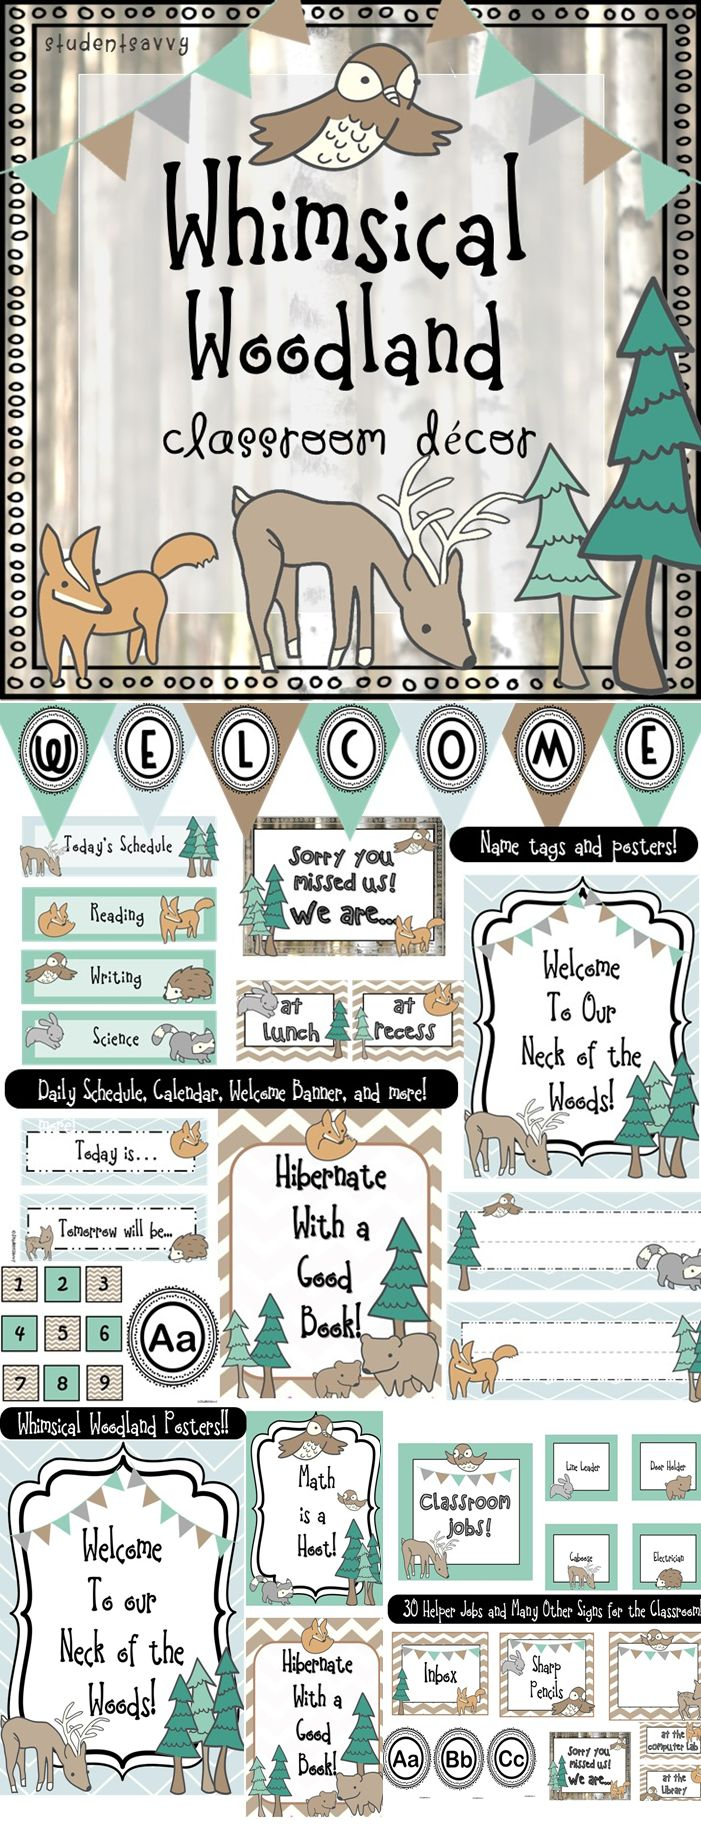 Whimsical Woodland theme to decorate classroom!!!